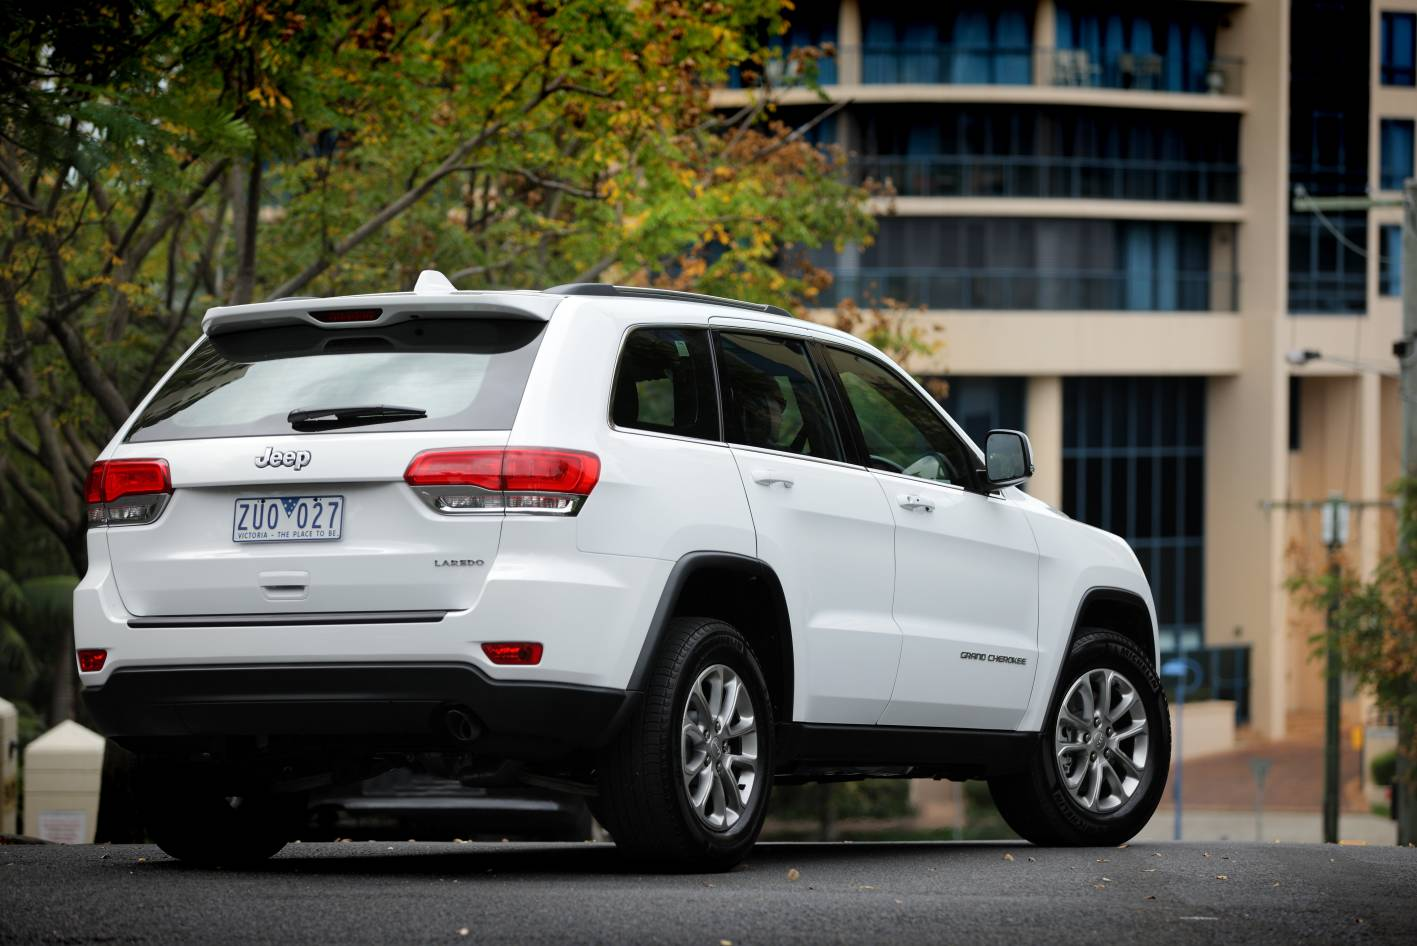 Jeep Brute For Sale >> 2014 Jeep Grand Cherokee now on sale; 8spd auto, RWD ...